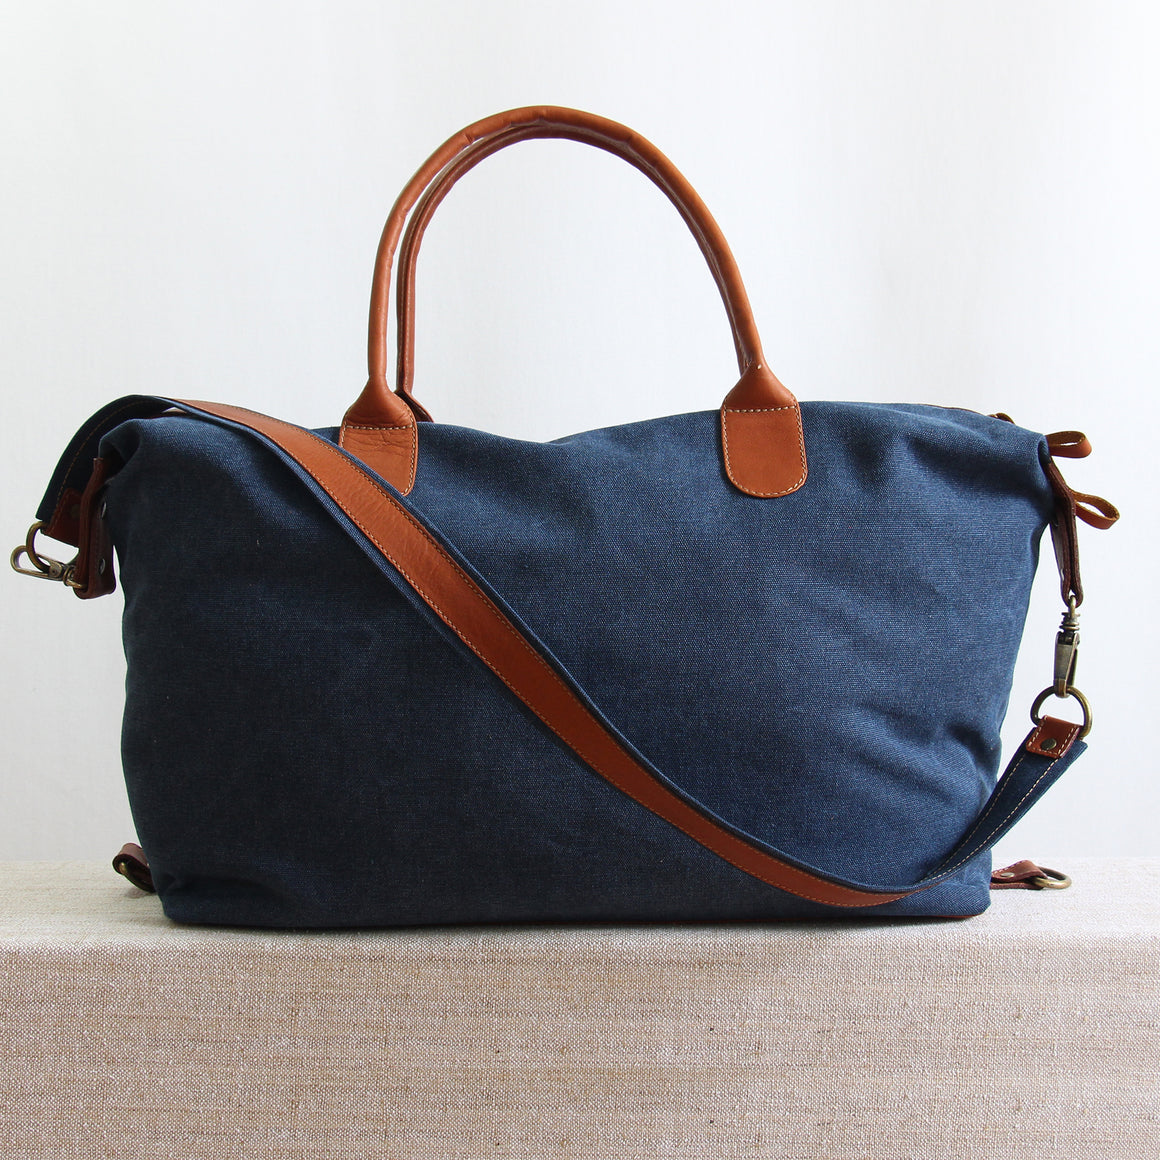 Intrepid Traveler - Convertible Tote